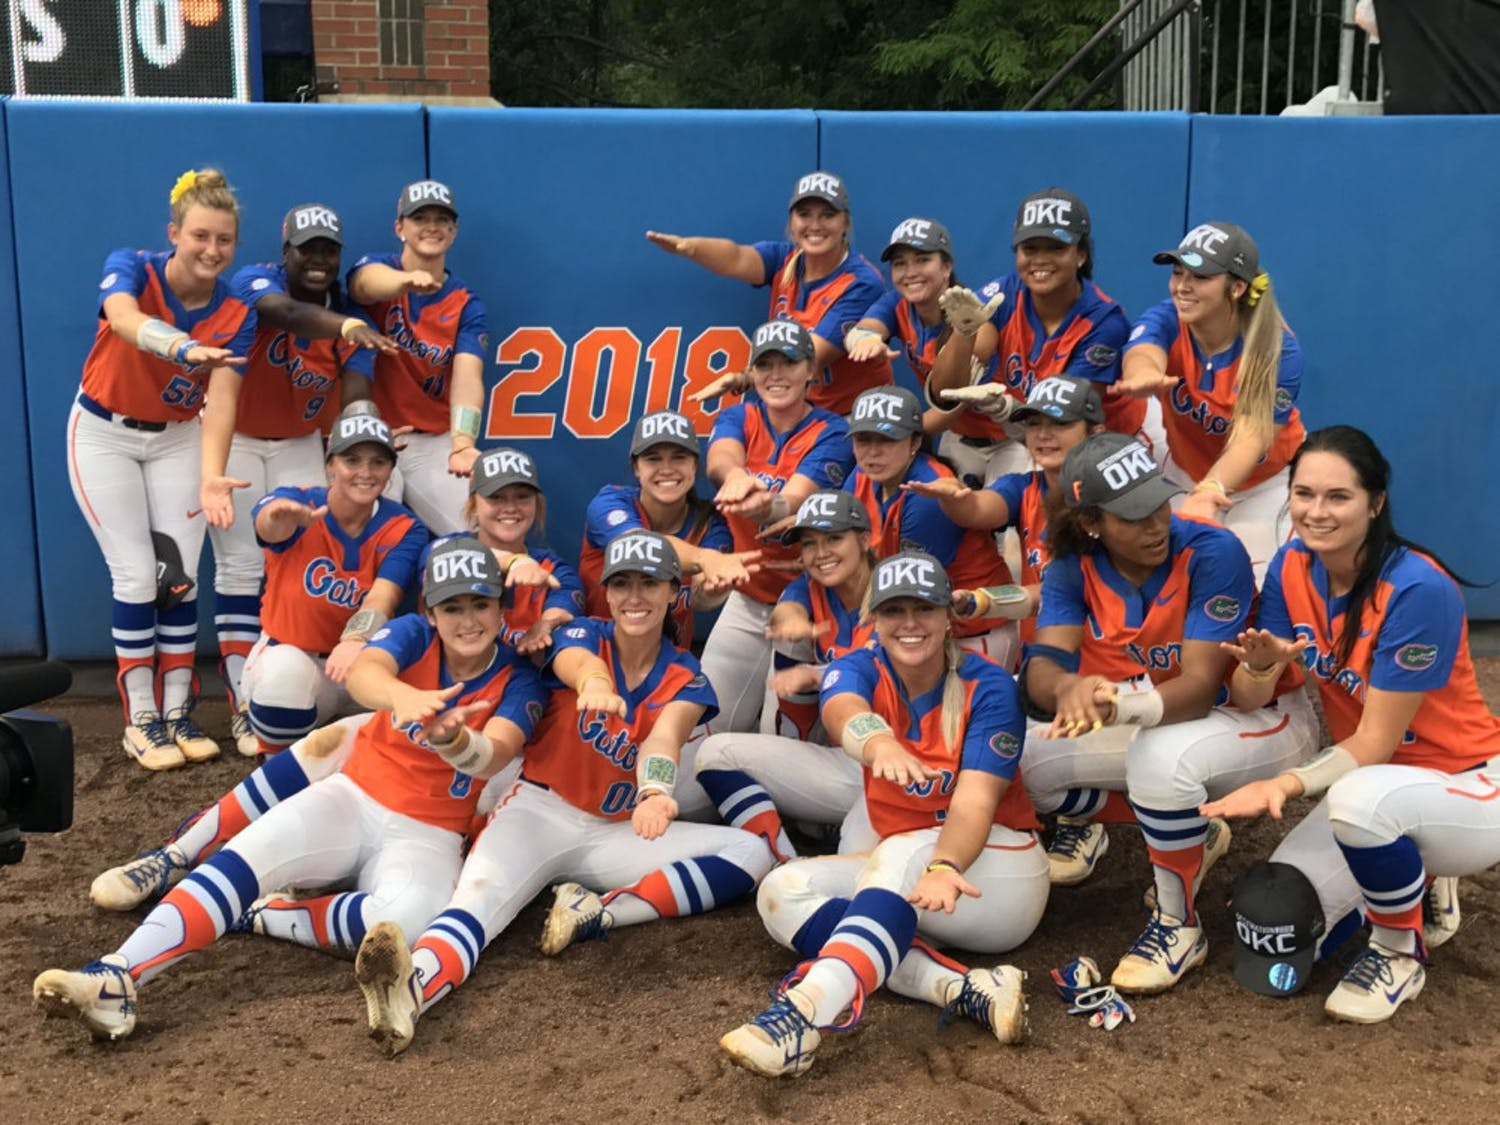 The Florida Gators softball team in front of its newly earned 2018 College World Series sign. UF won on a walk-off home run by freshman Jordan Matthews to send it to Oklahoma City.